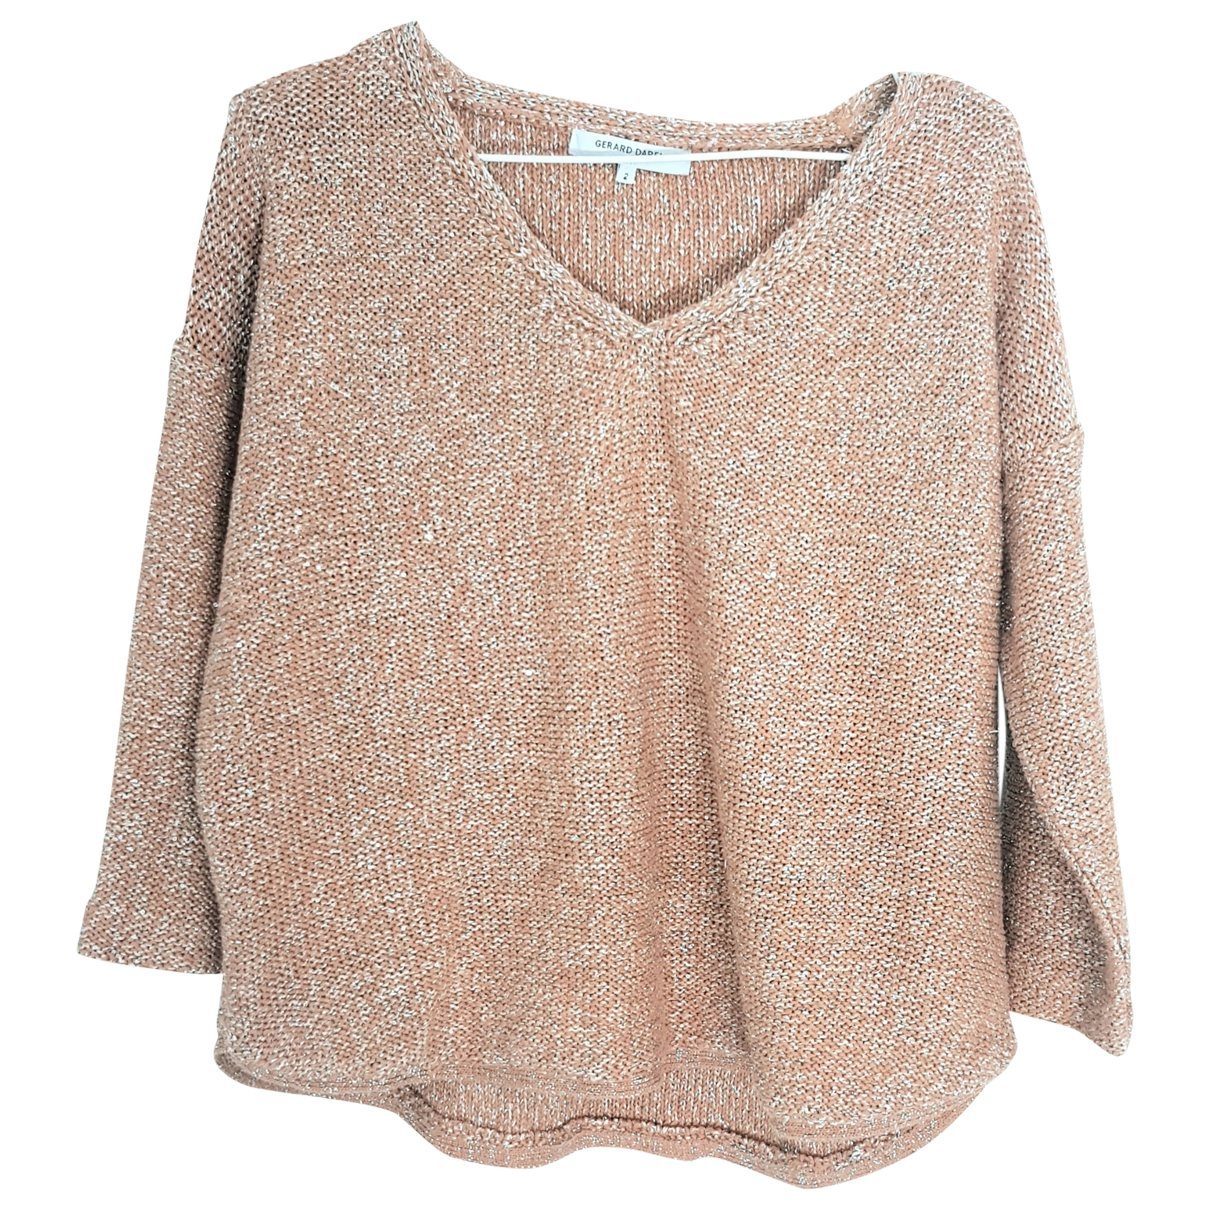 Gerard Darel \N Beige Cotton Knitwear for Women 2 0-5